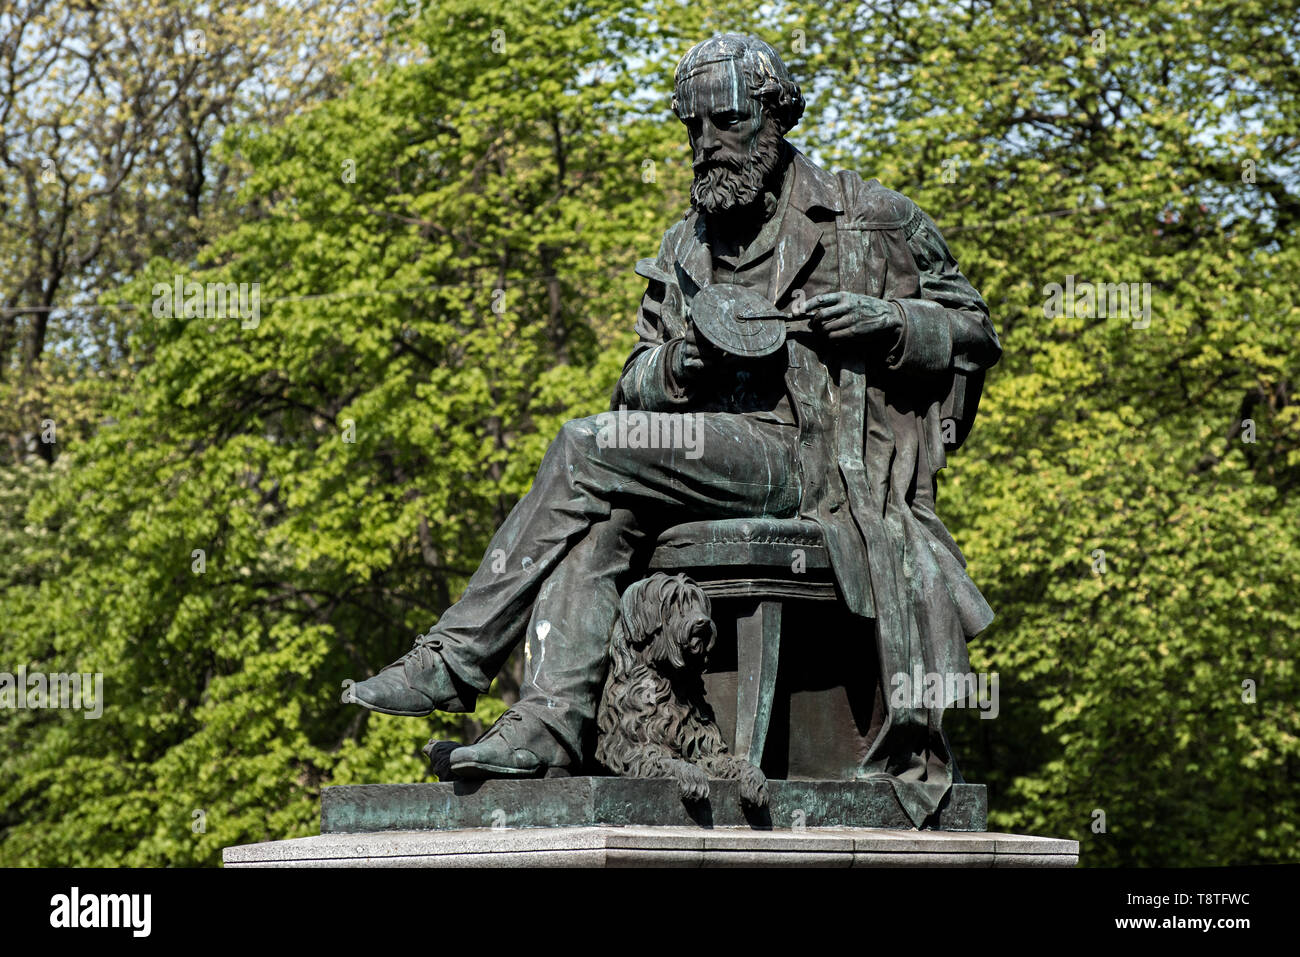 Statue of James Clerk Maxwell (1831-78) by sculptor Alexander Stoddart in George Street, Edinburgh. - Stock Image